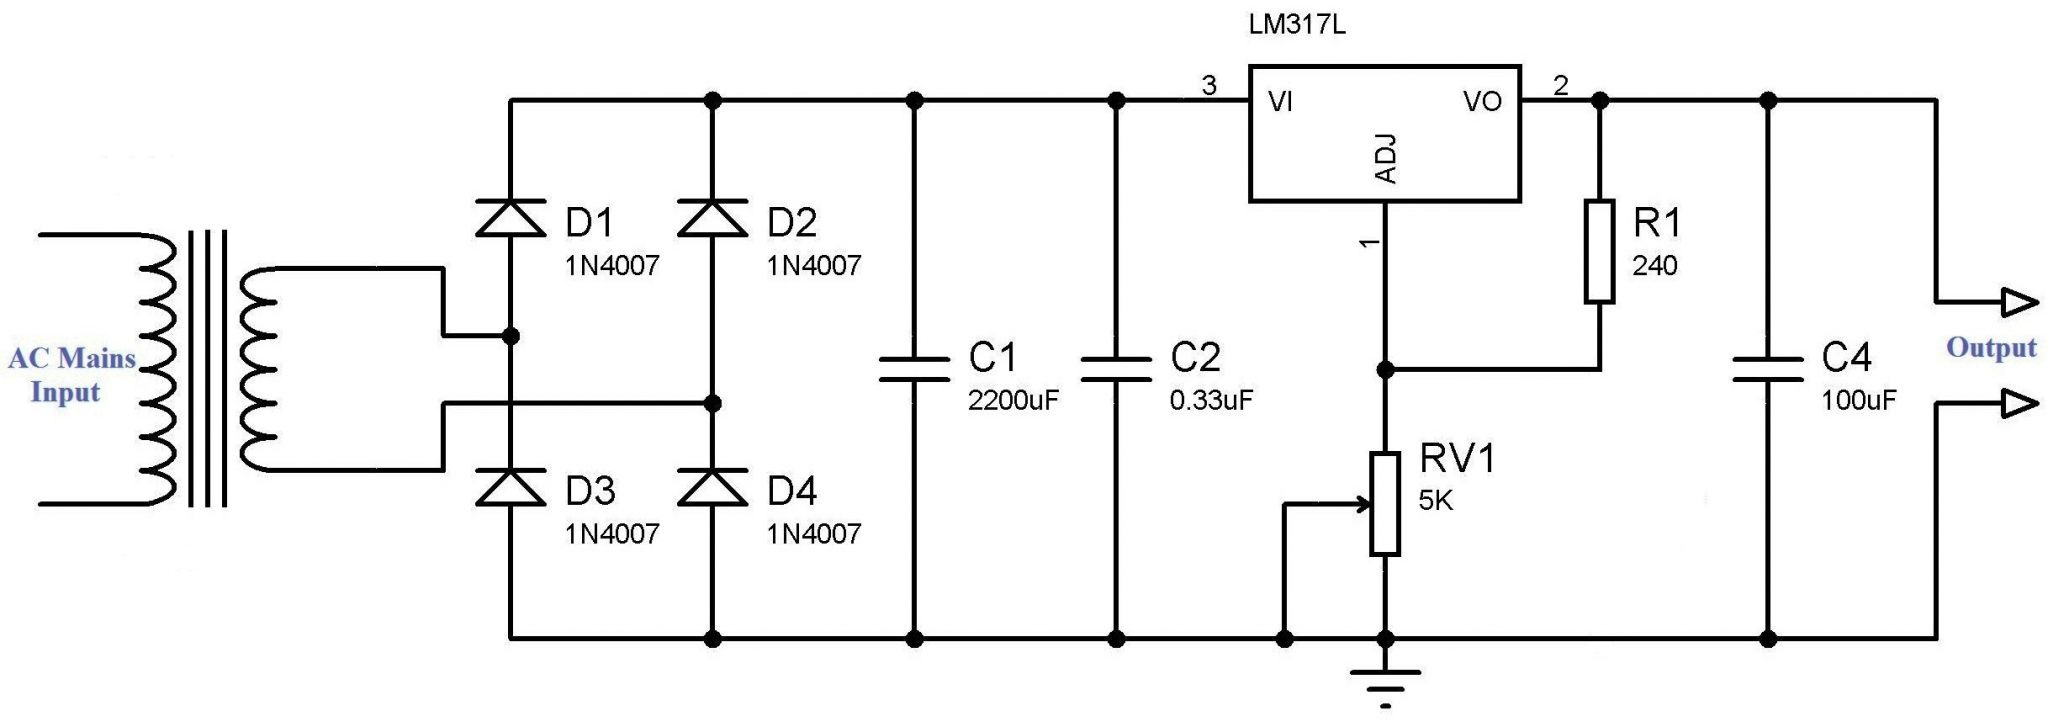 variable power supply using lm317 voltage regulator dell power supply wiring diagram simple circuit diagram simple variable power supply using lm317